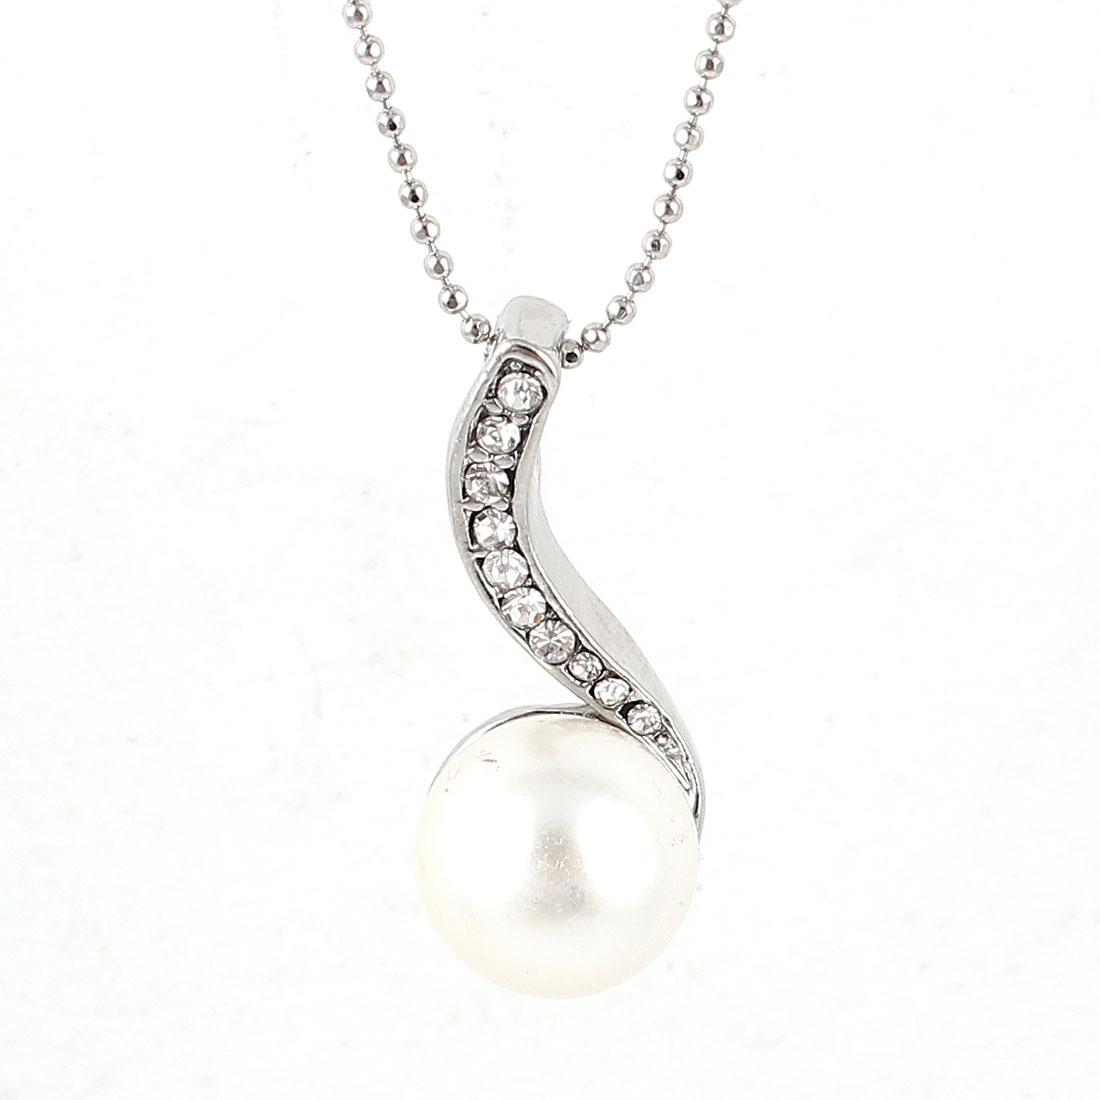 Lady Silver Tone Beads Chain Faux Pearl Pendant Rhinestone Detailing Necklace